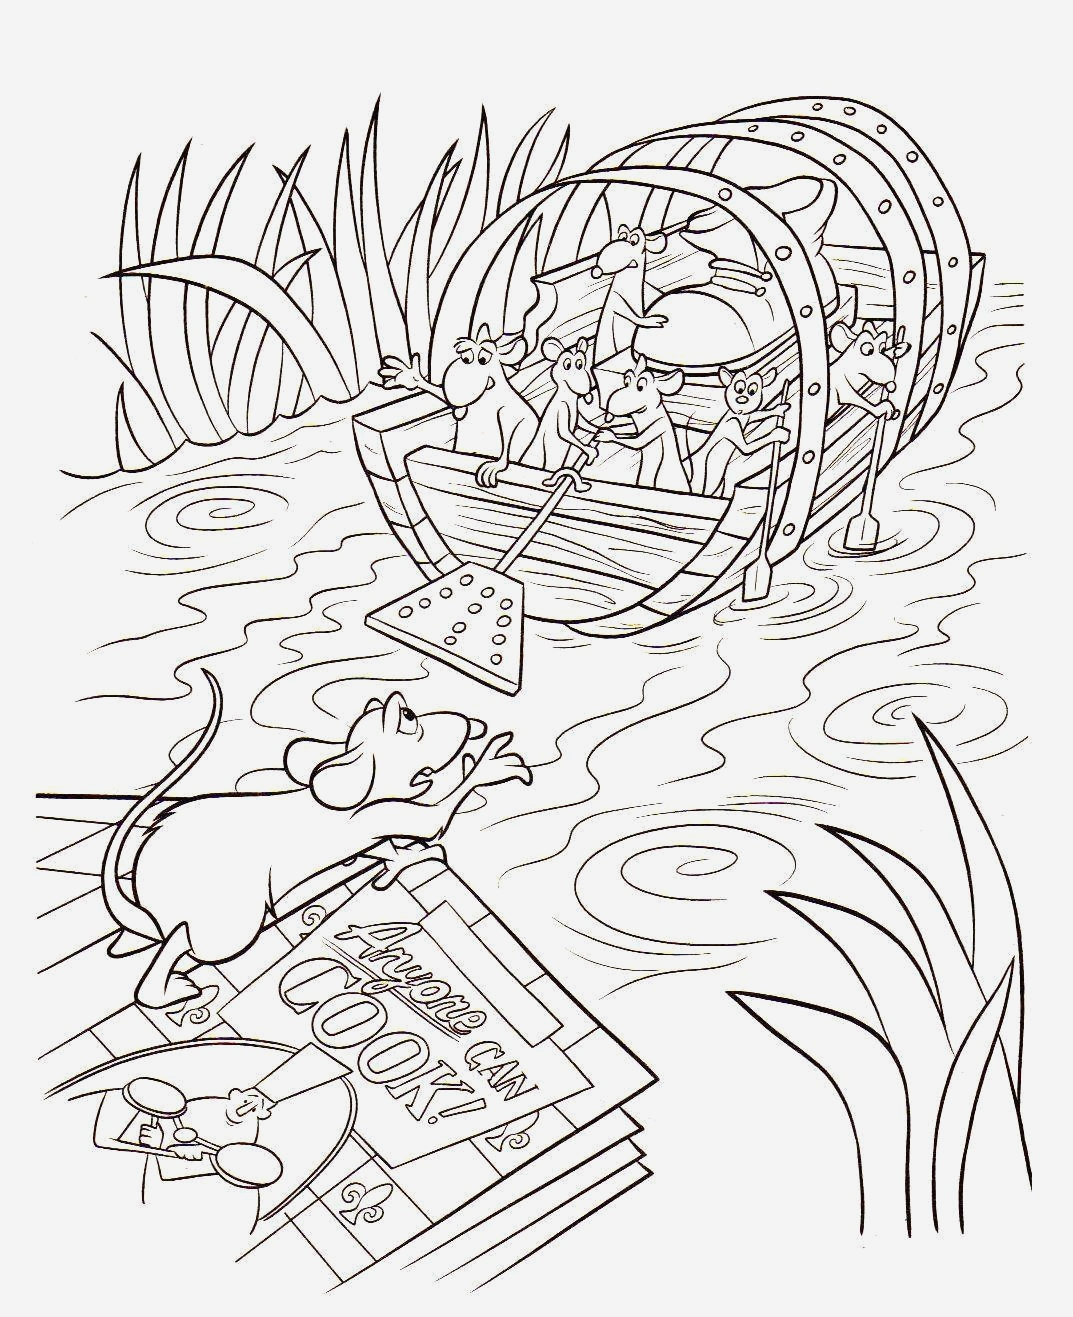 Coloriage Ratatouille Awesome Ratatouille Free to Color for Children Ratatouille Kids Of Coloriage Ratatouille